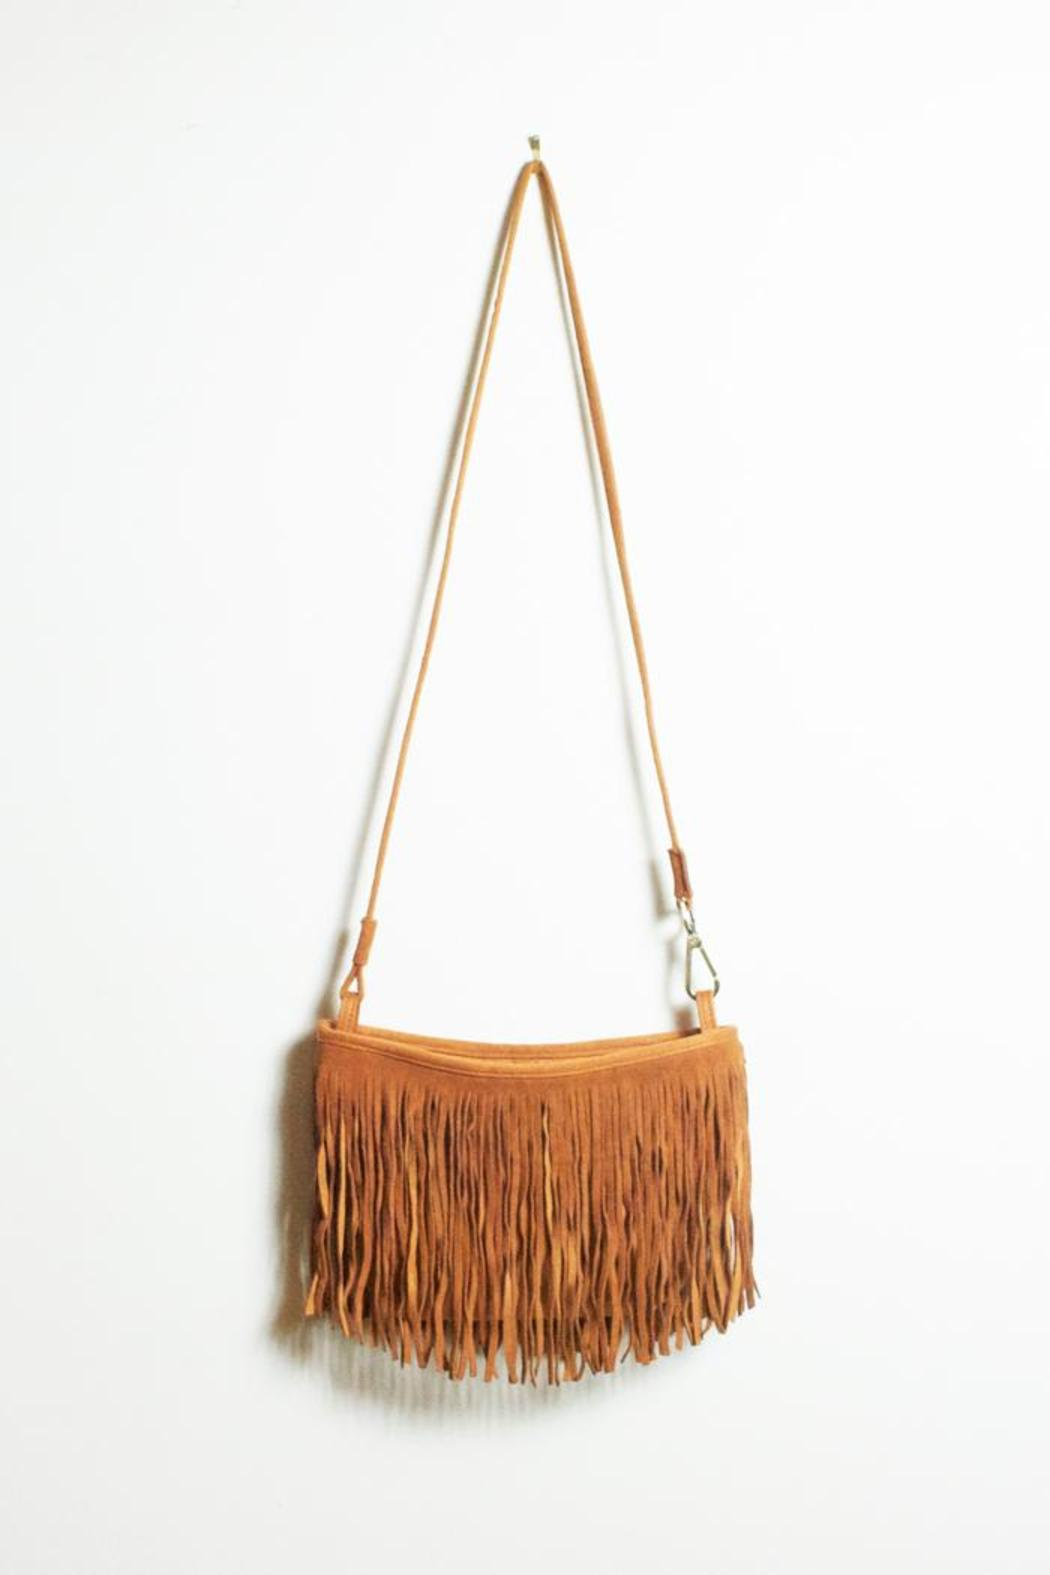 Street Level Boho Fringe Bag From Iowa